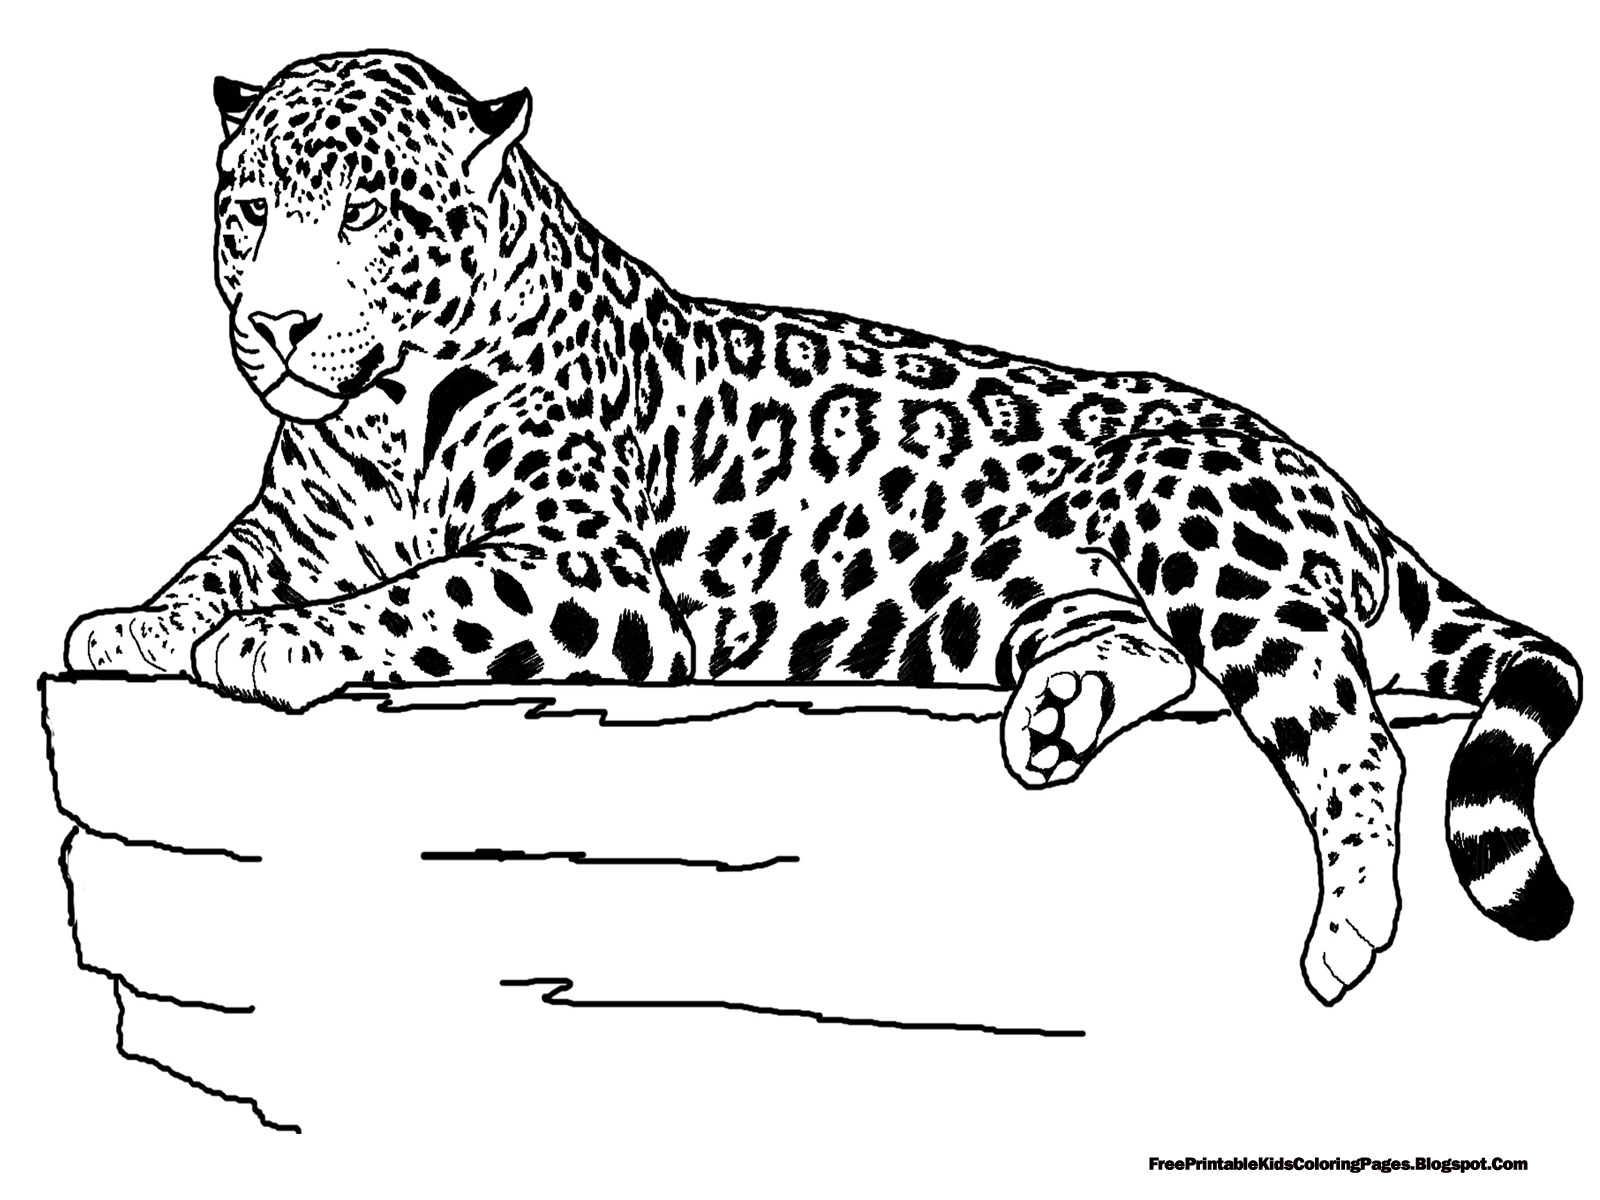 jaguar pictures to print animal coloring pages free coloring pages printable for pictures jaguar print to